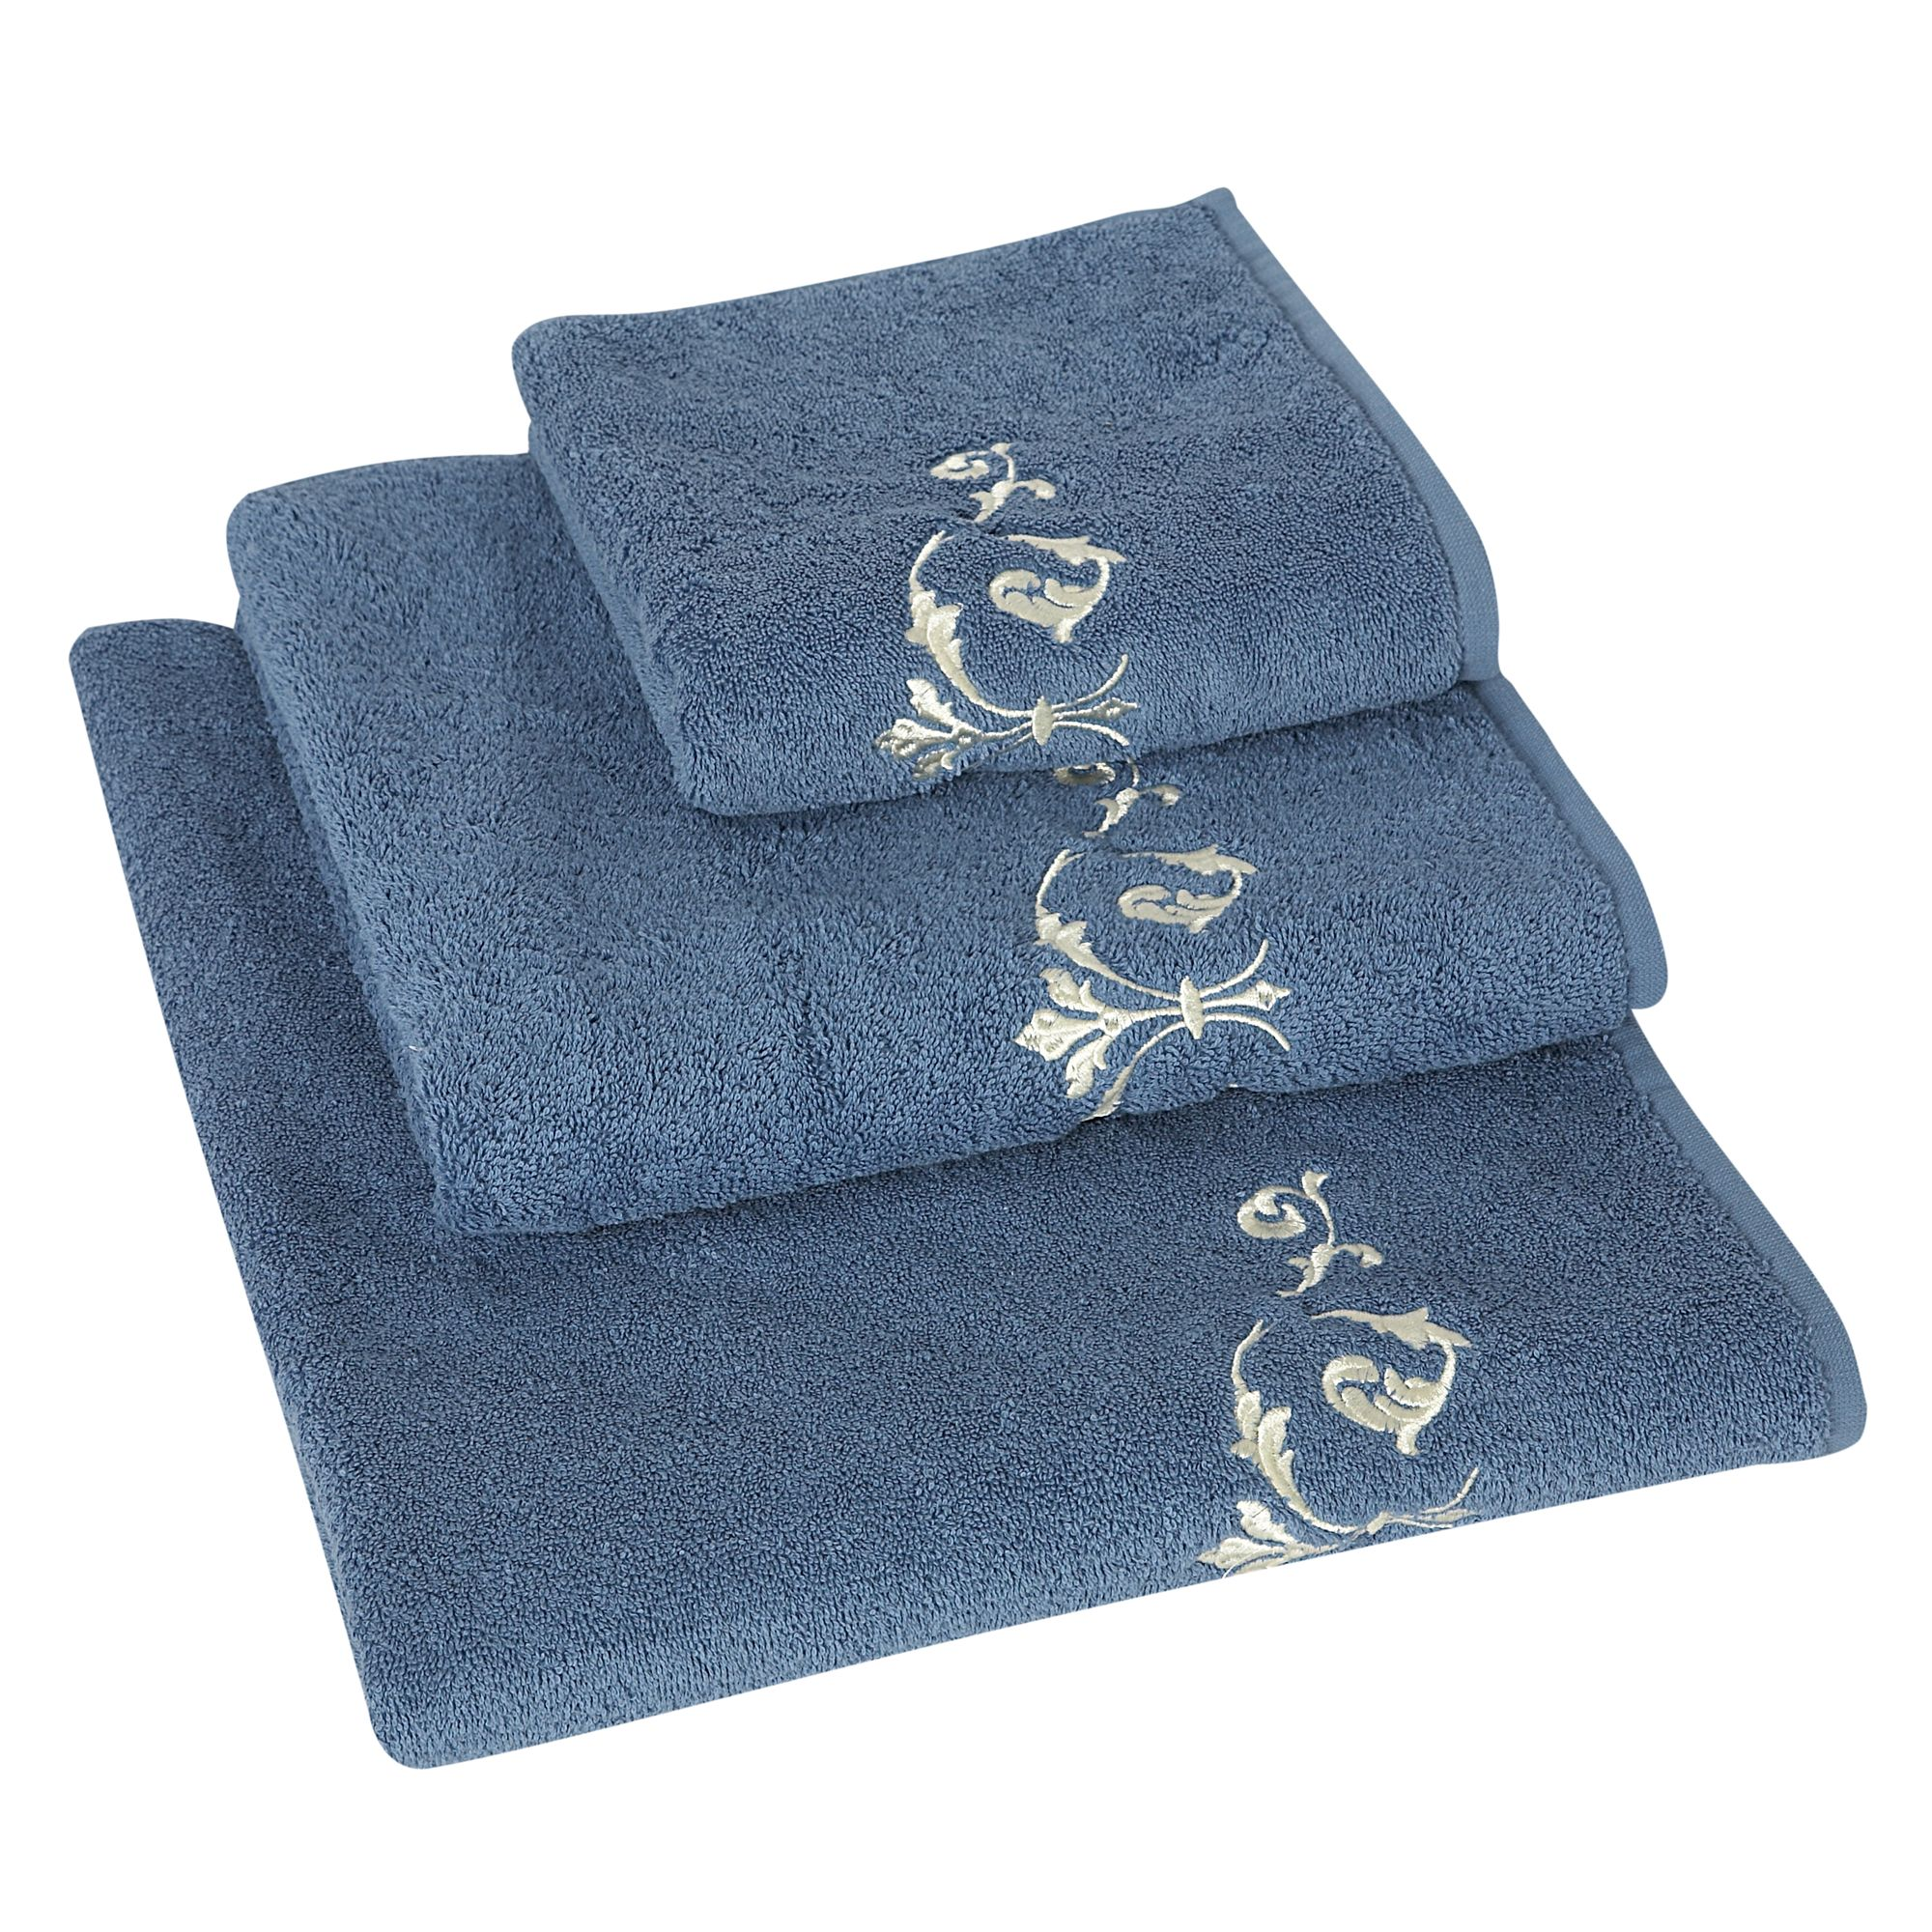 Arabesque embroidered bath sheet